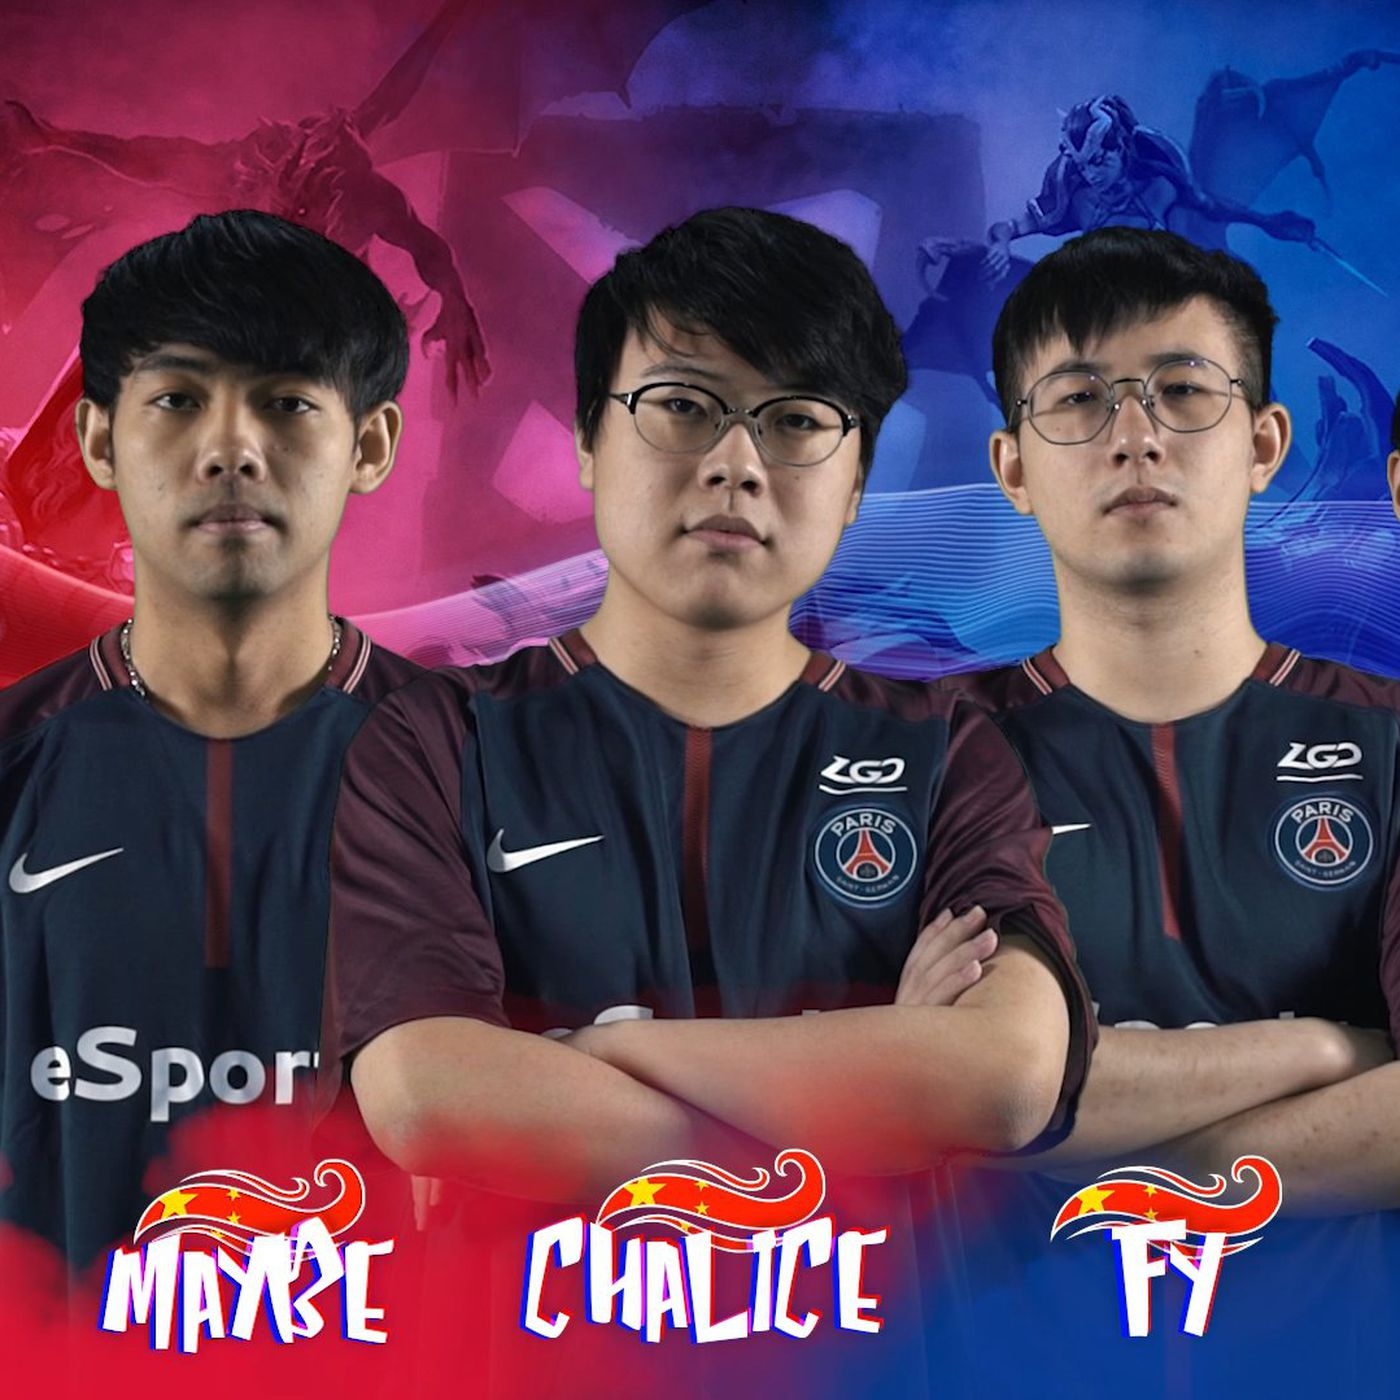 Soccer Org Paris Saint Germain Directly Partners With Lgd Gaming The Flying Courier